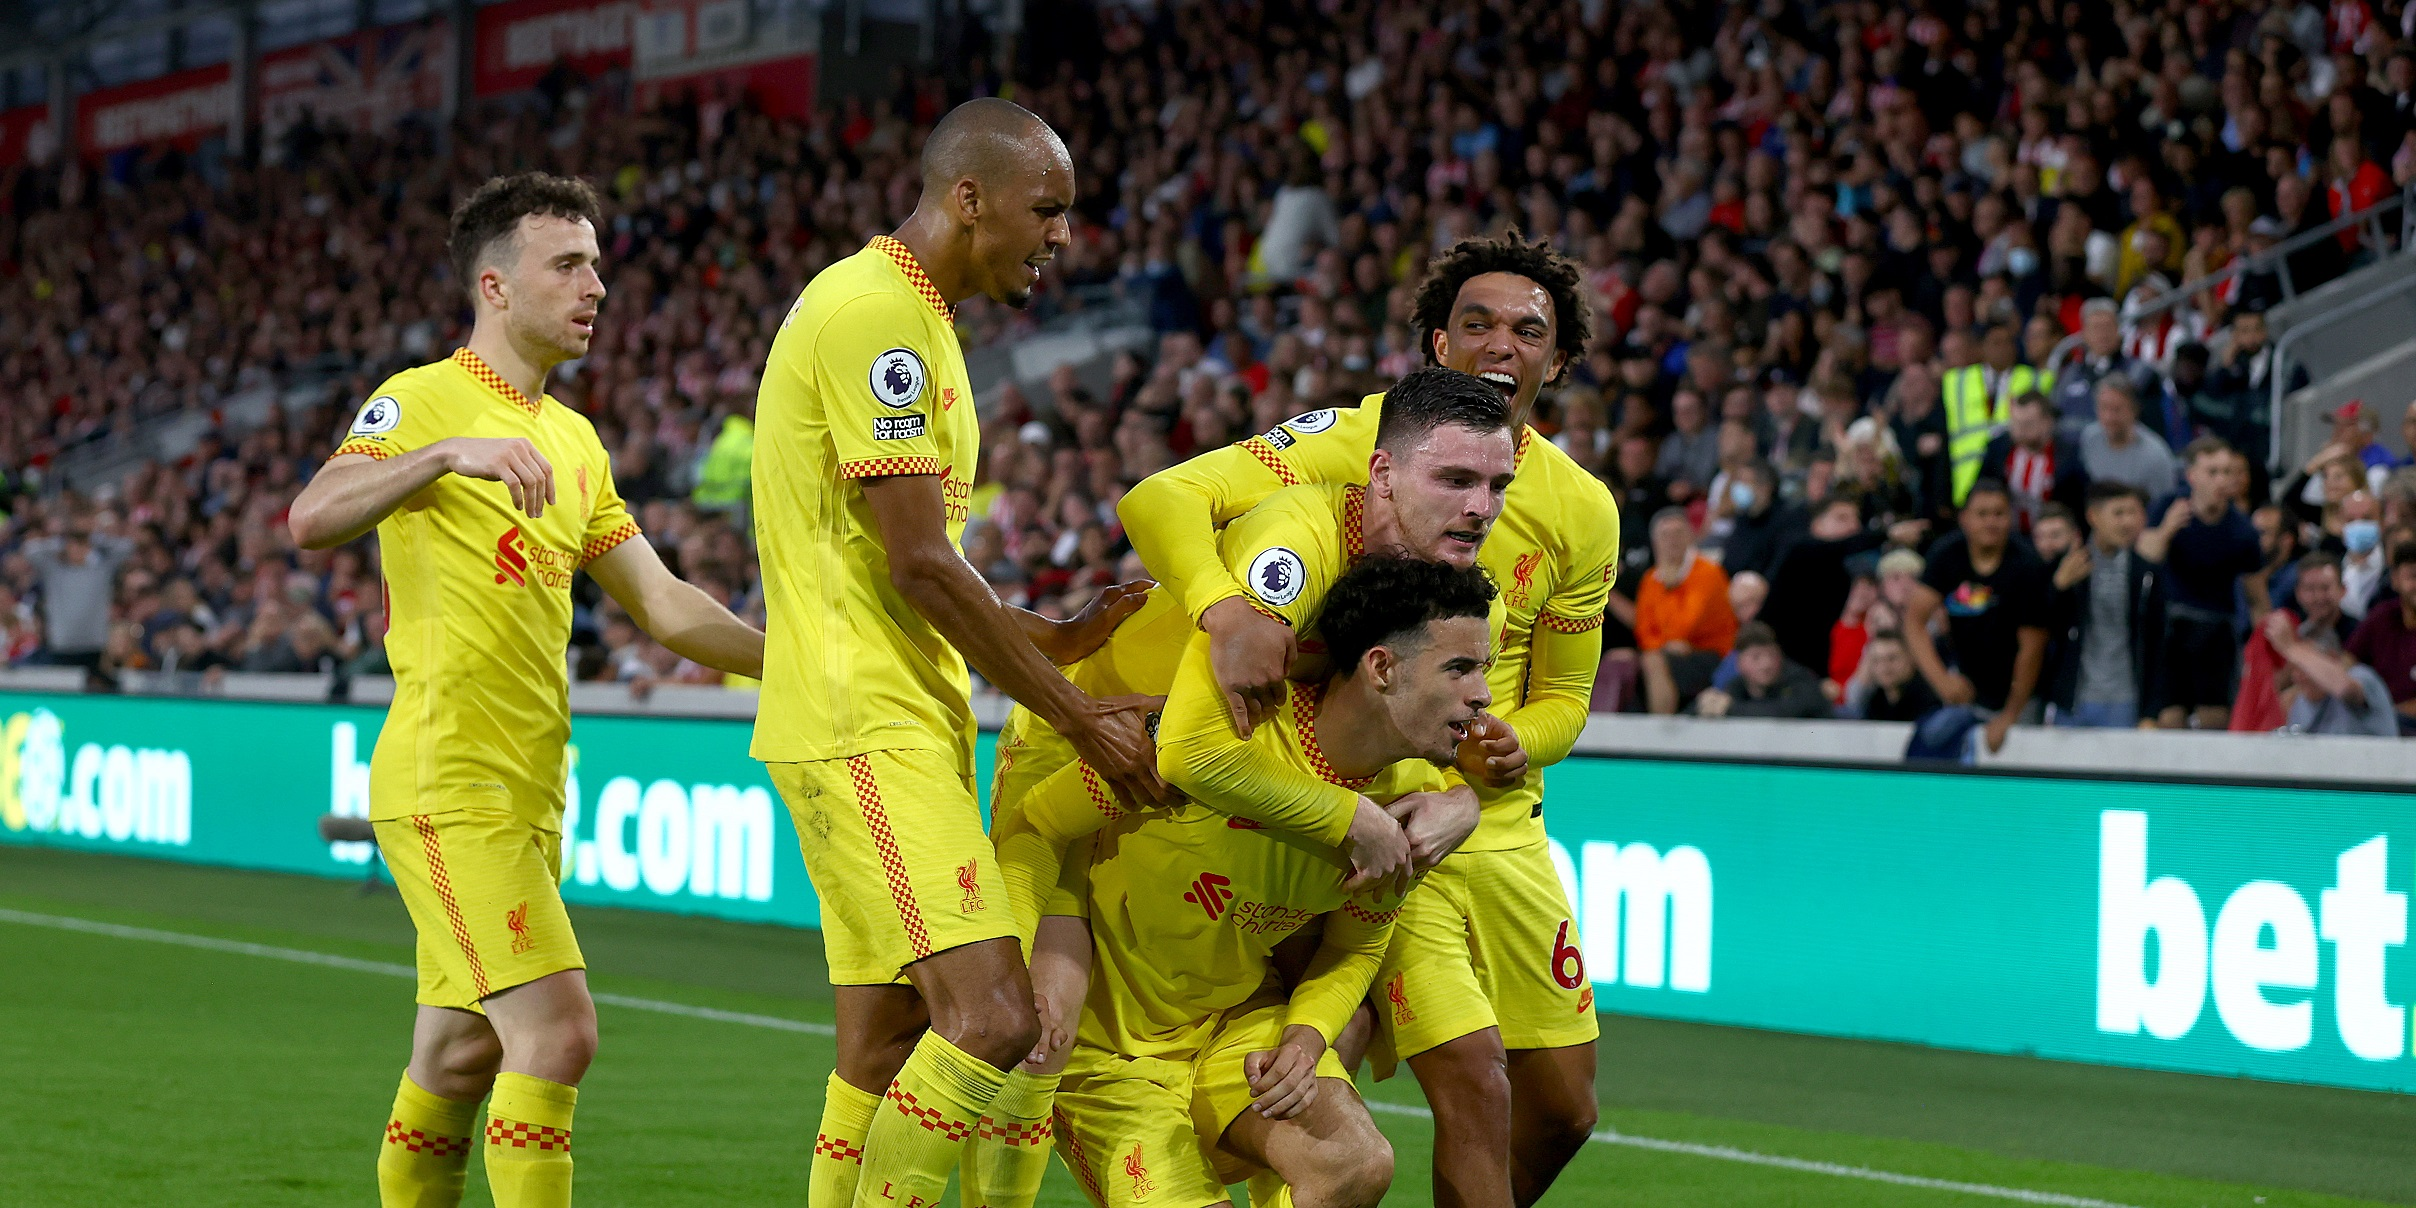 Liverpool predicted XI v Watford: Klopp to hand first start of the season to 22-year-old & field new midfield combo